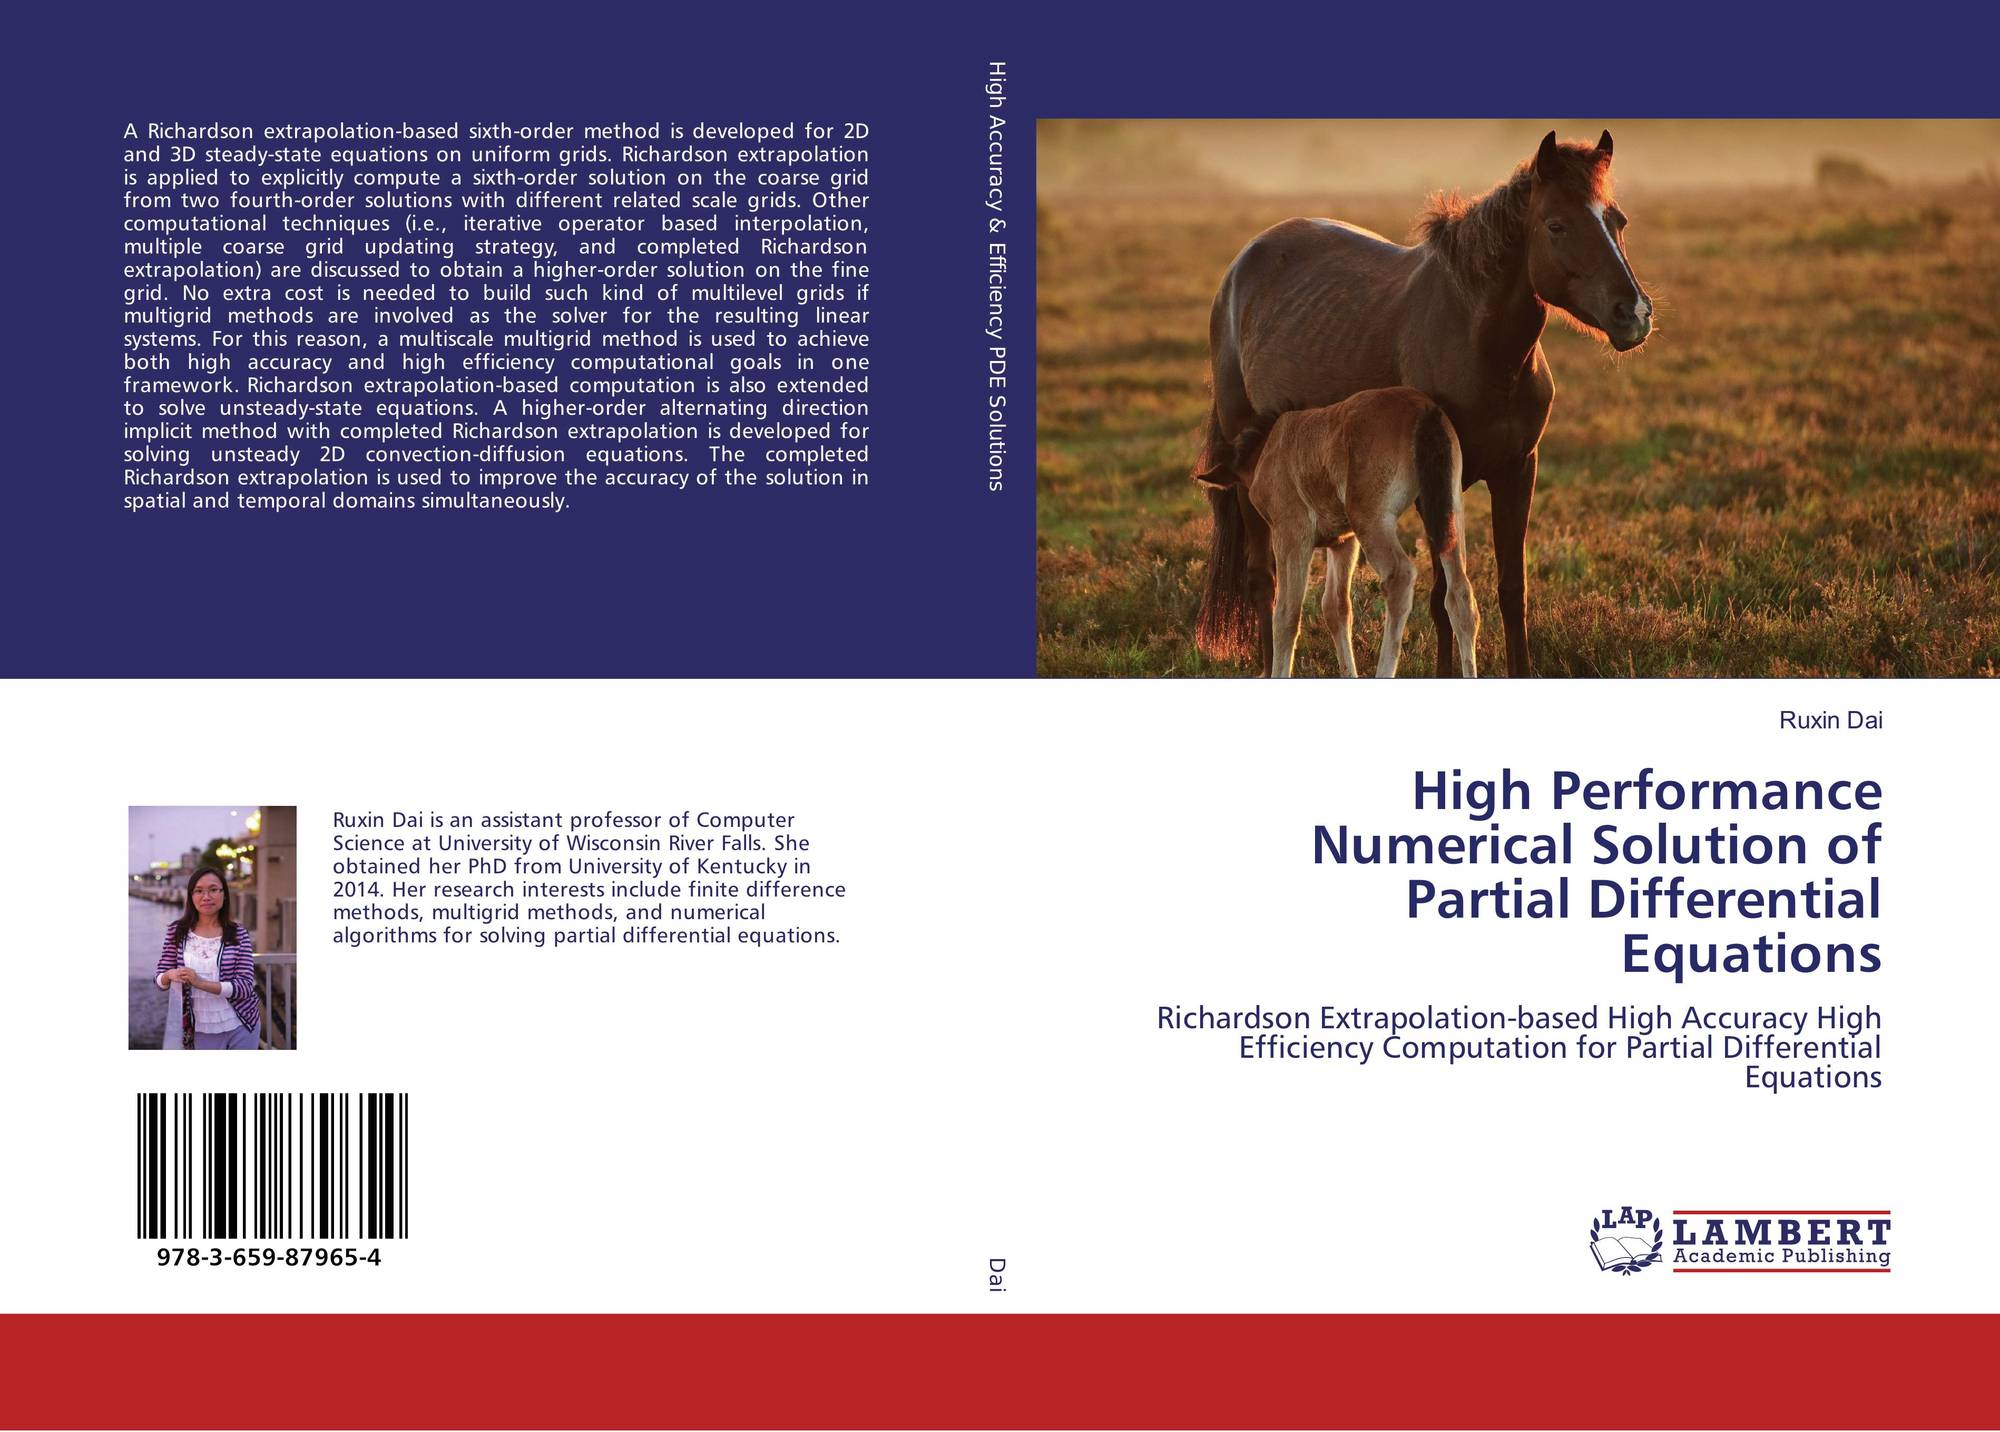 High Performance Numerical Solution of Partial Differential